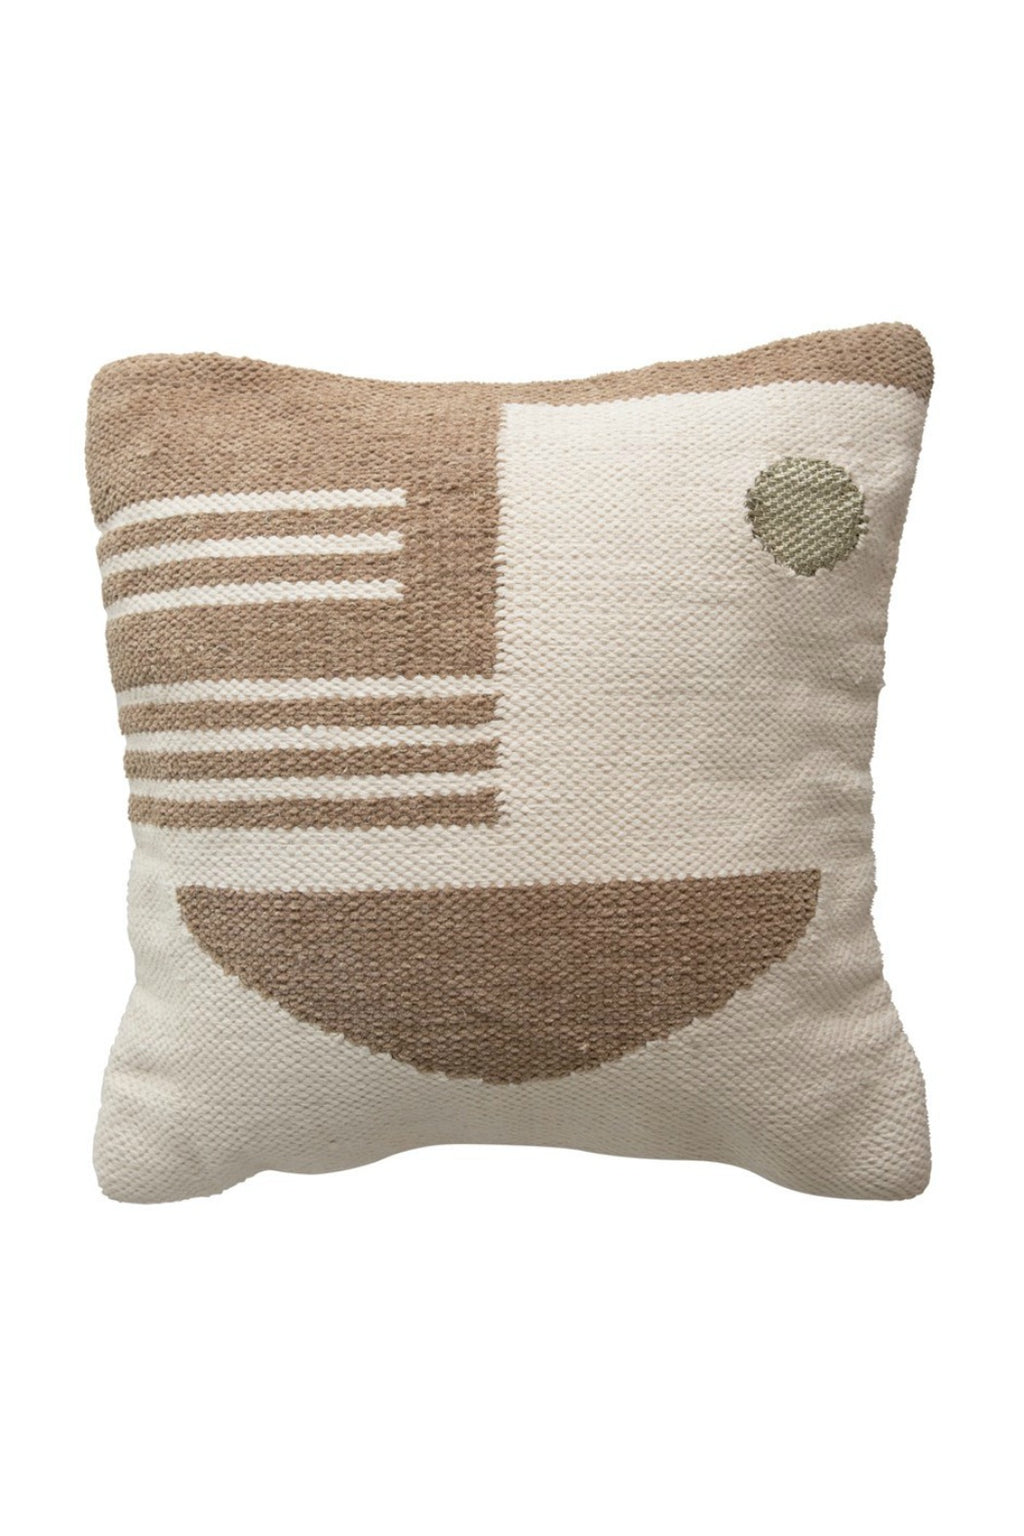 Creative Co-Op Deco Cotton + Wool Taupe Pillow